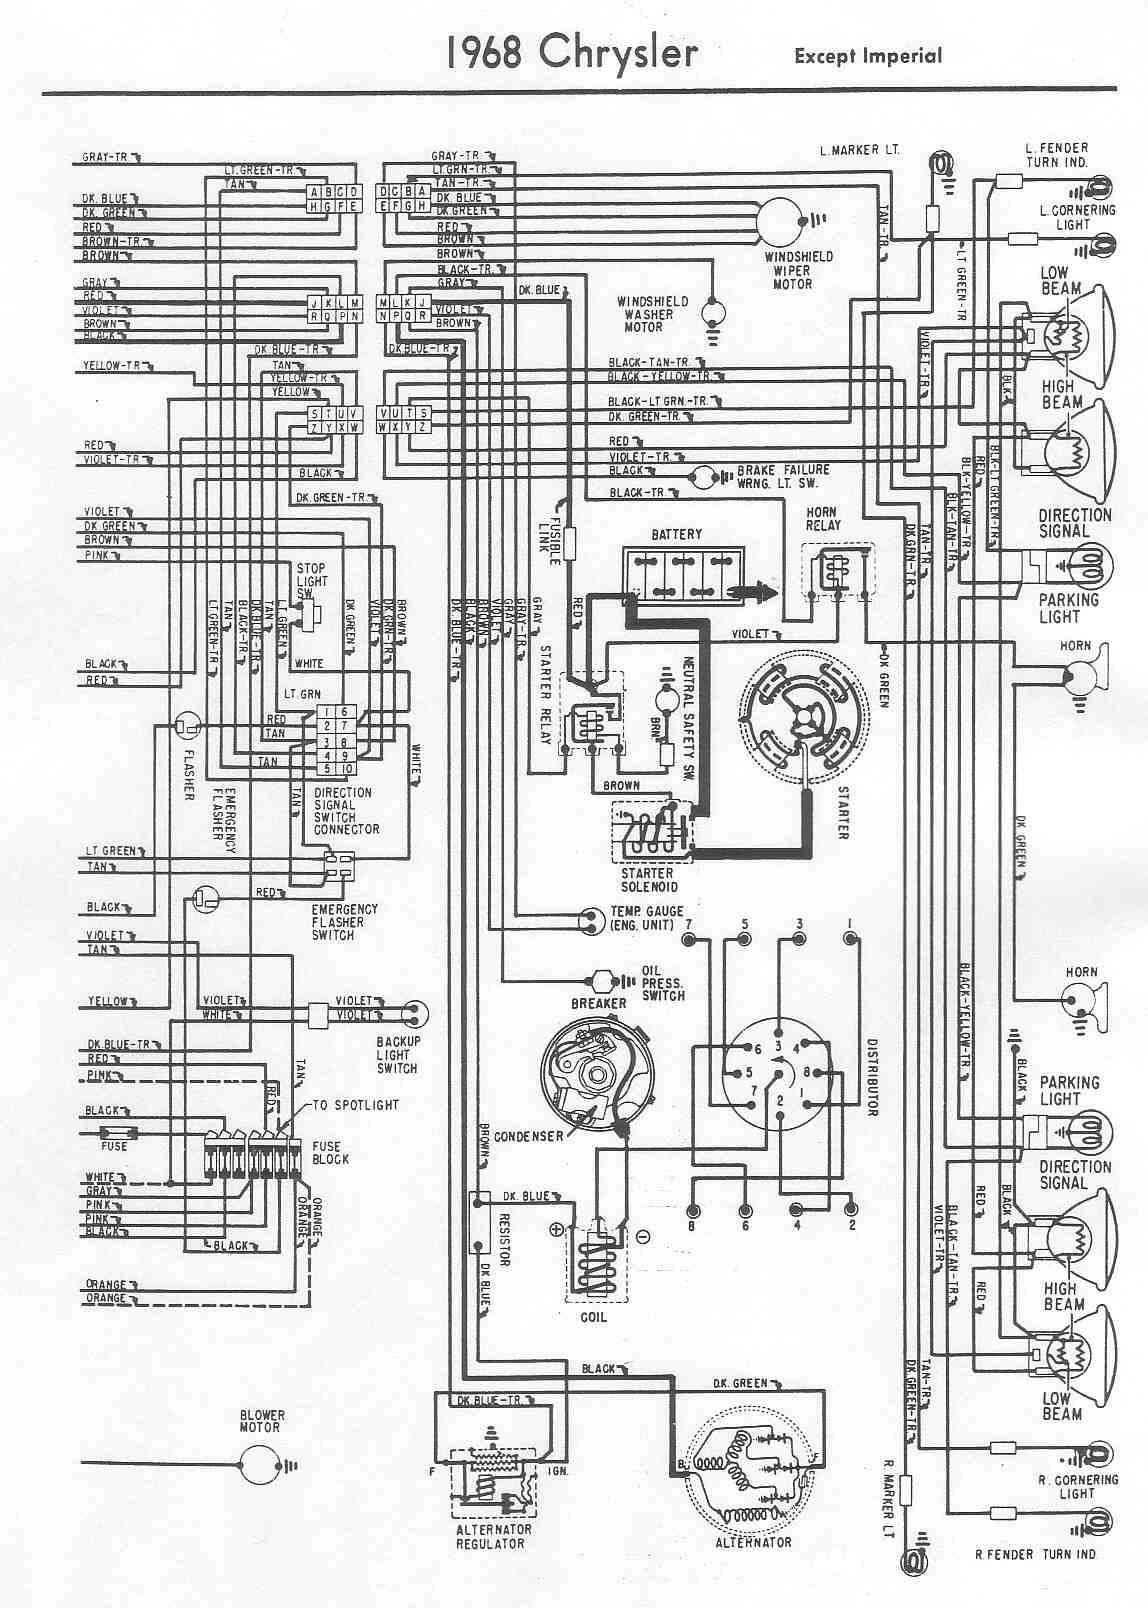 Code 3 Traffic Buster Pa400ss Wiring Diagramtraffic 2002 Chevy Wiper Motor Free Diagrams Weebly Cadilac Escalade Gandul 45 77 Electrical Diagram Of 1968 Chrysler All Modelt